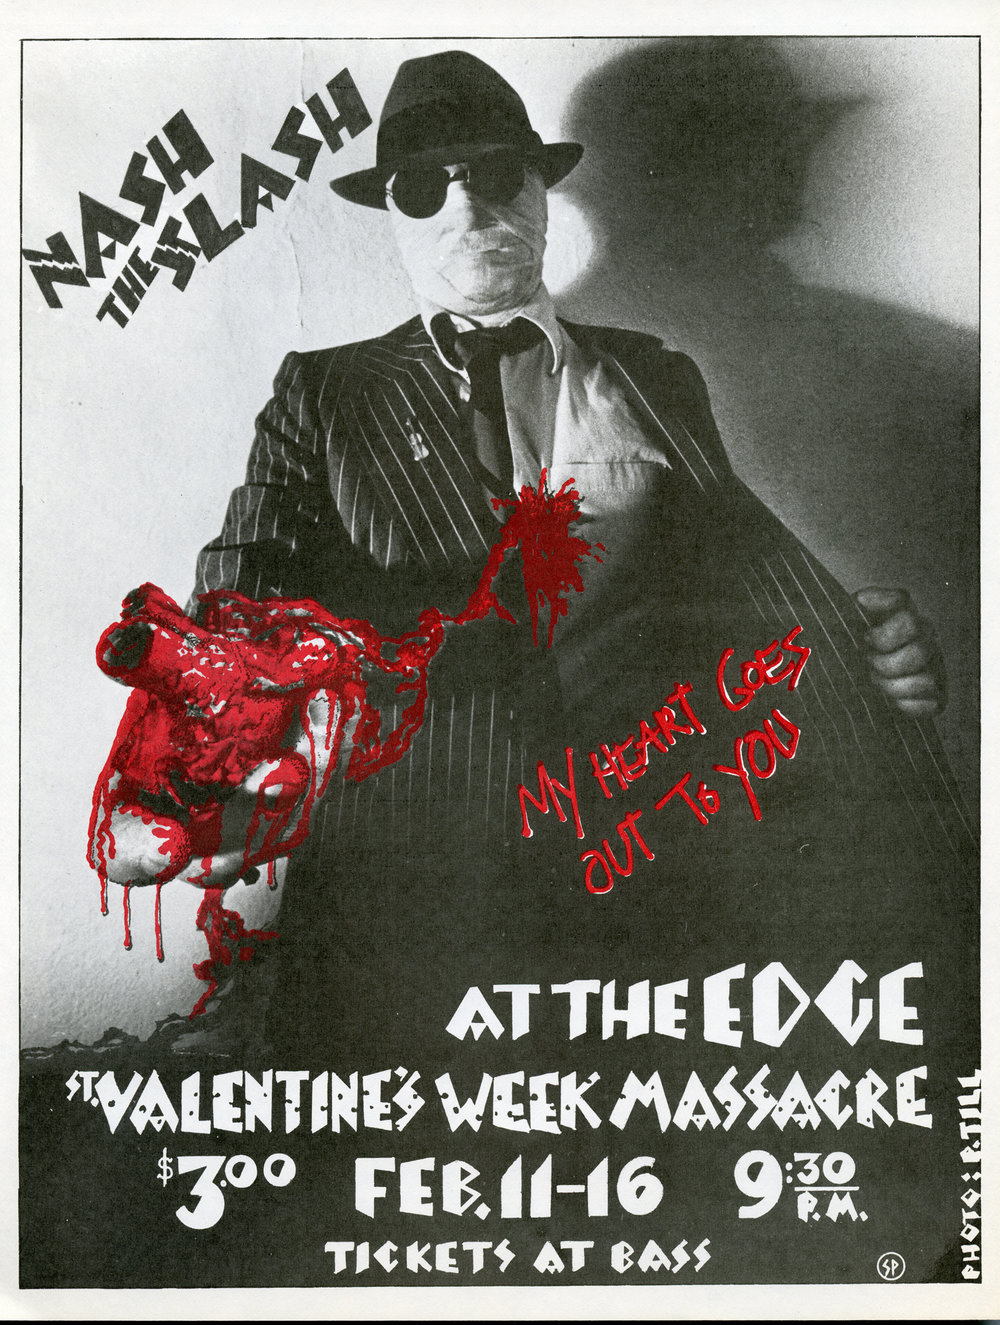 St. Valentine's Week Massacre, design by Nash and photographer Paul Till, 1980.